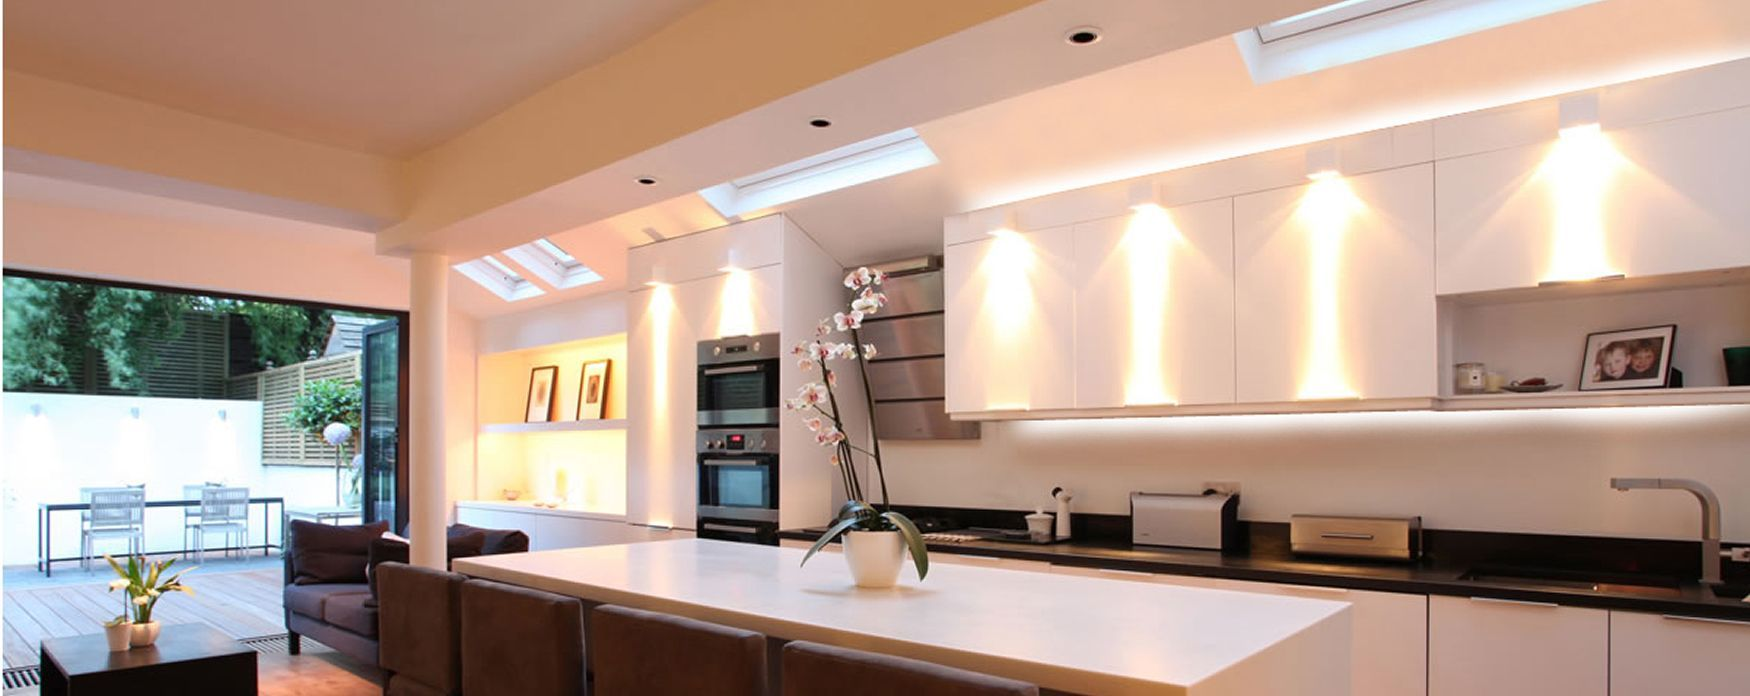 Küchenleuchten Bright Kitchen Led Tape Simplelighting Co Uk Home